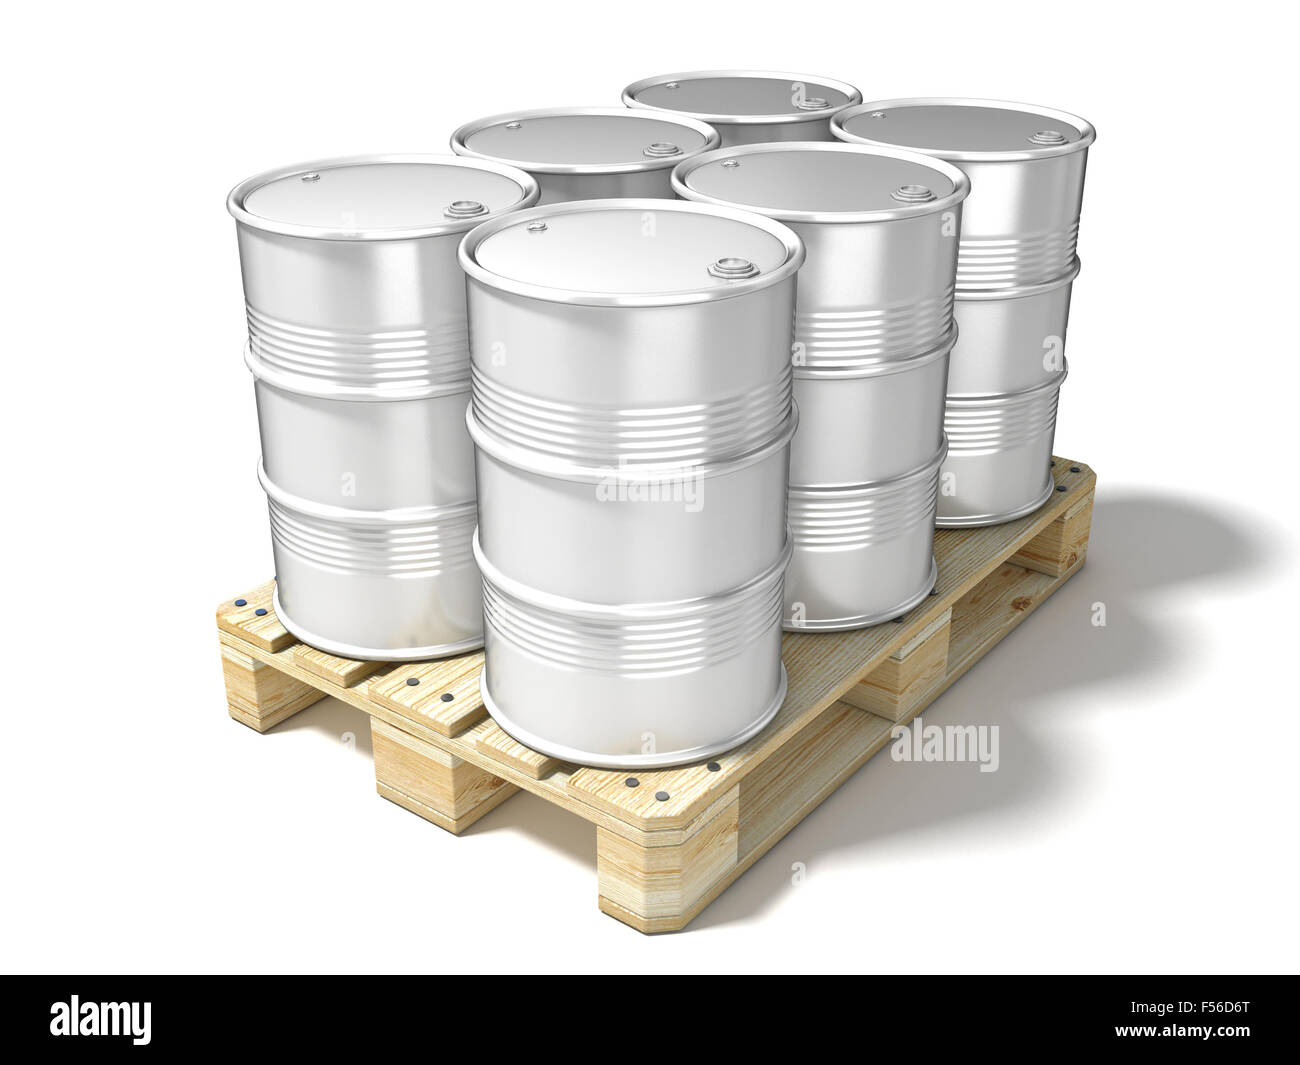 White oil barrels on wooden euro pallet. 3D illustration isolated on a white background - Stock Image